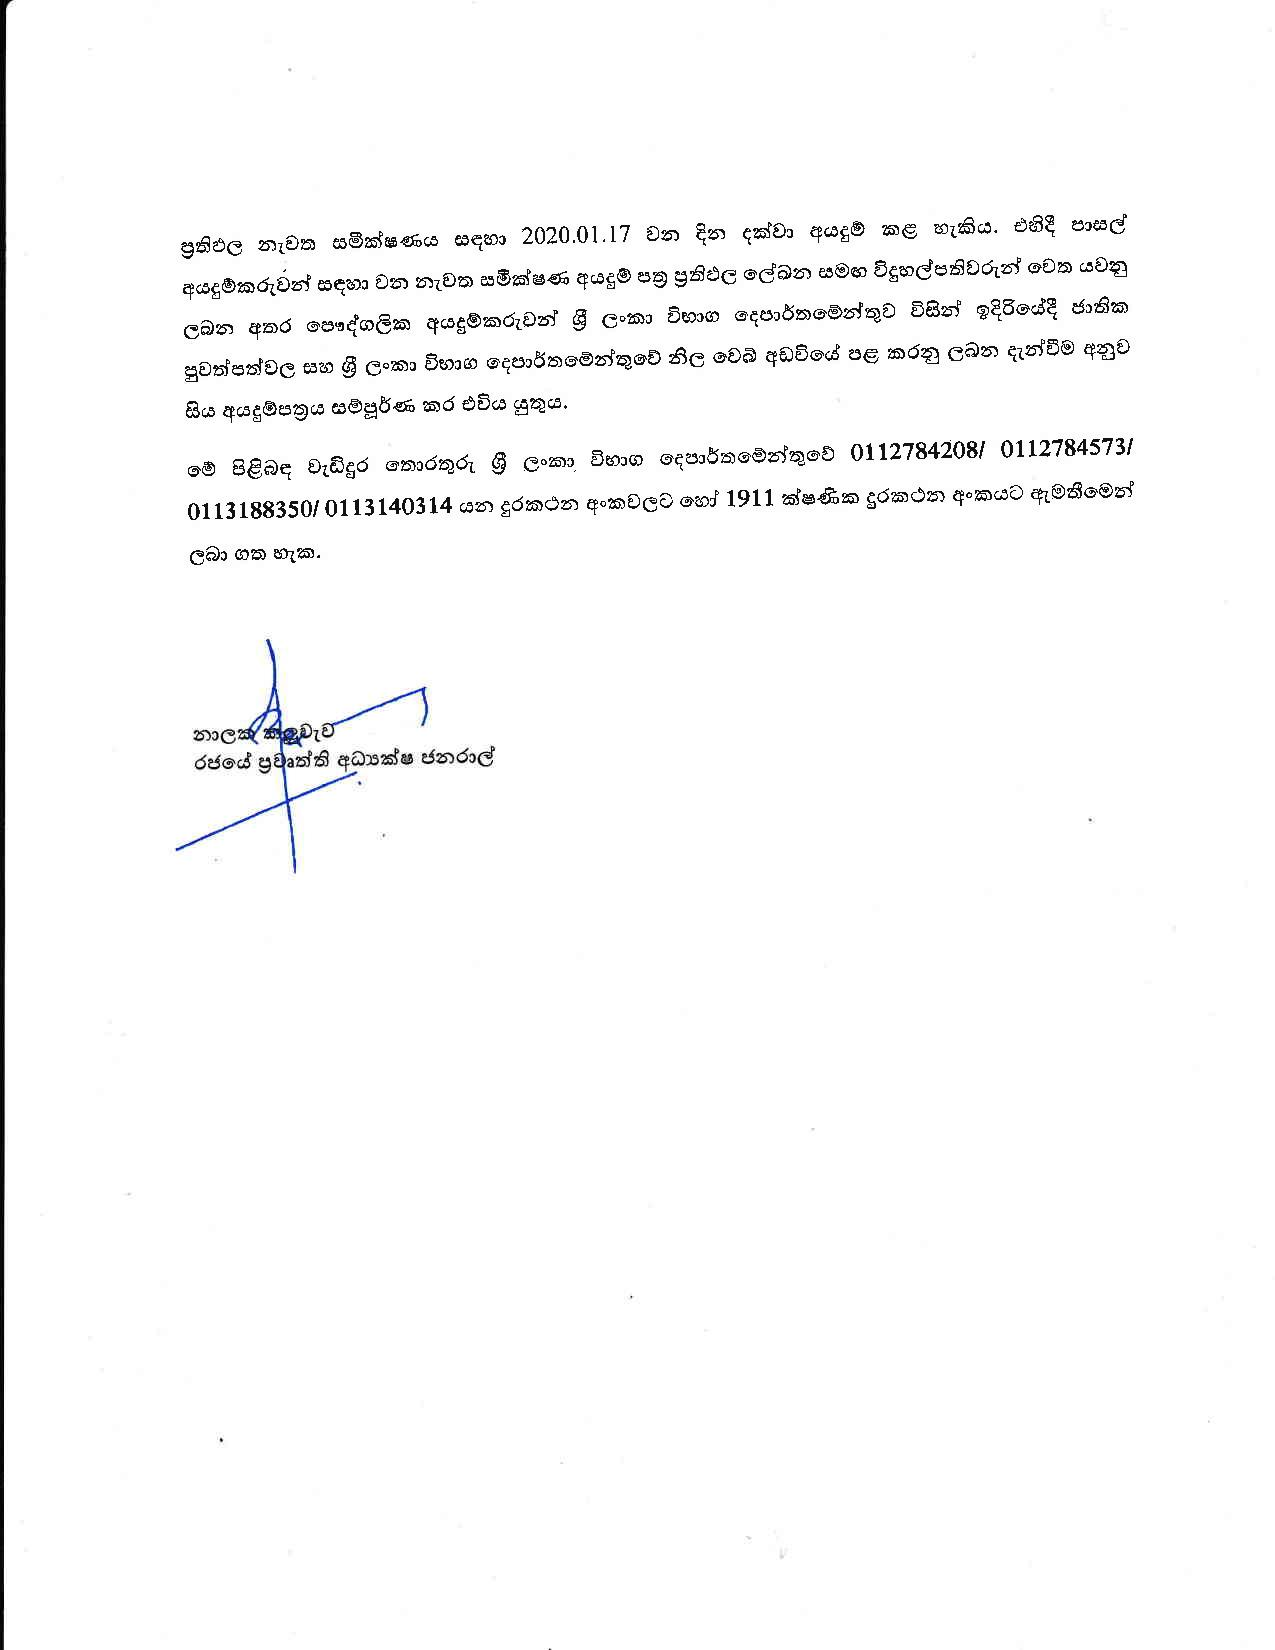 Press Release EXAM page 002